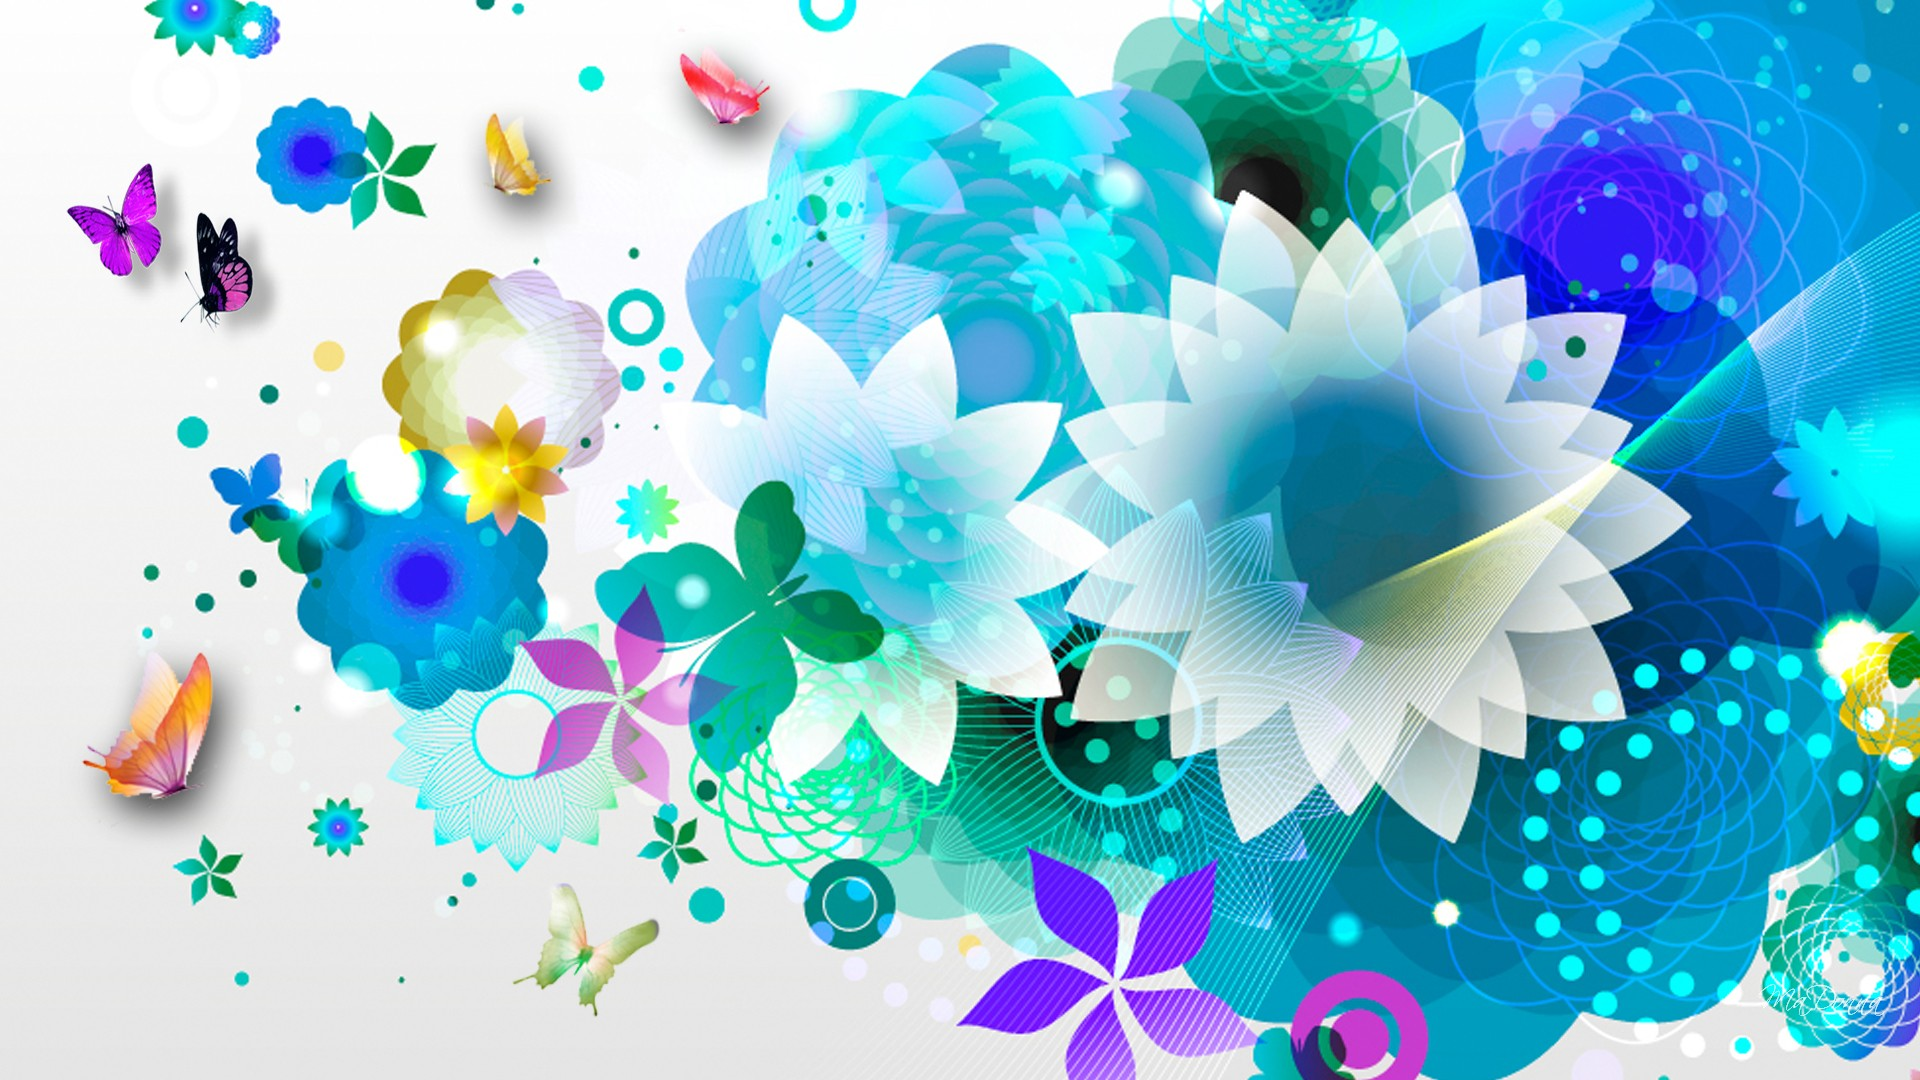 flower wallpapers widescreen space - photo #38